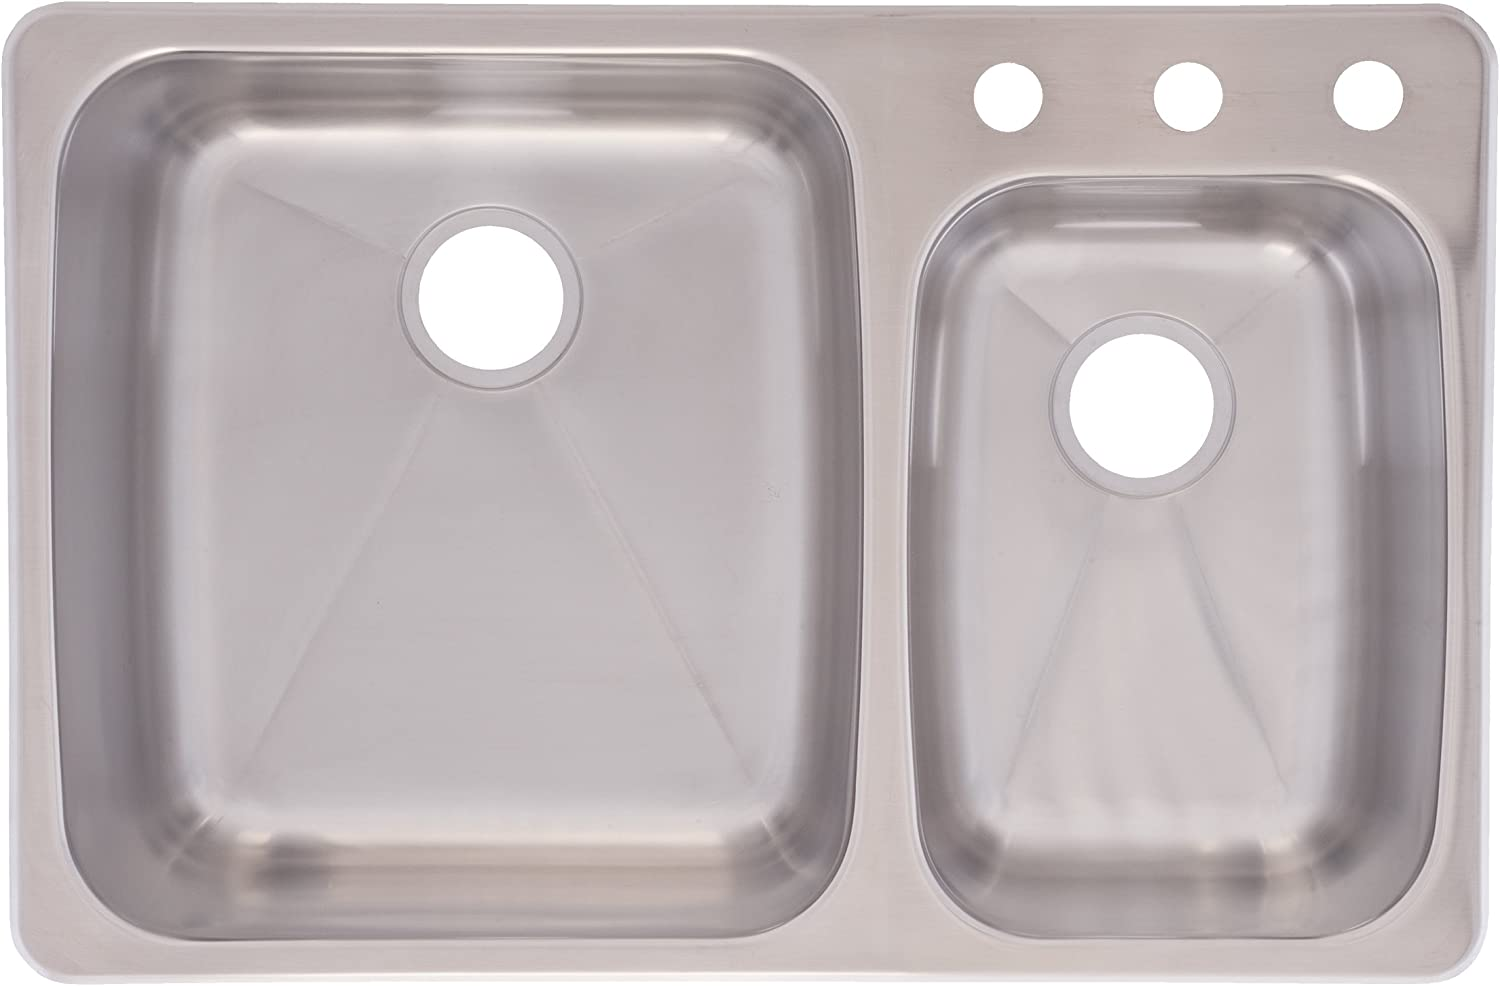 Franke C2233r 9 Stainless Steel 33 1 4x 22in Dualmount Double Bowl Sink Dualmount Double Bowl Kitchen Sink Amazon Com